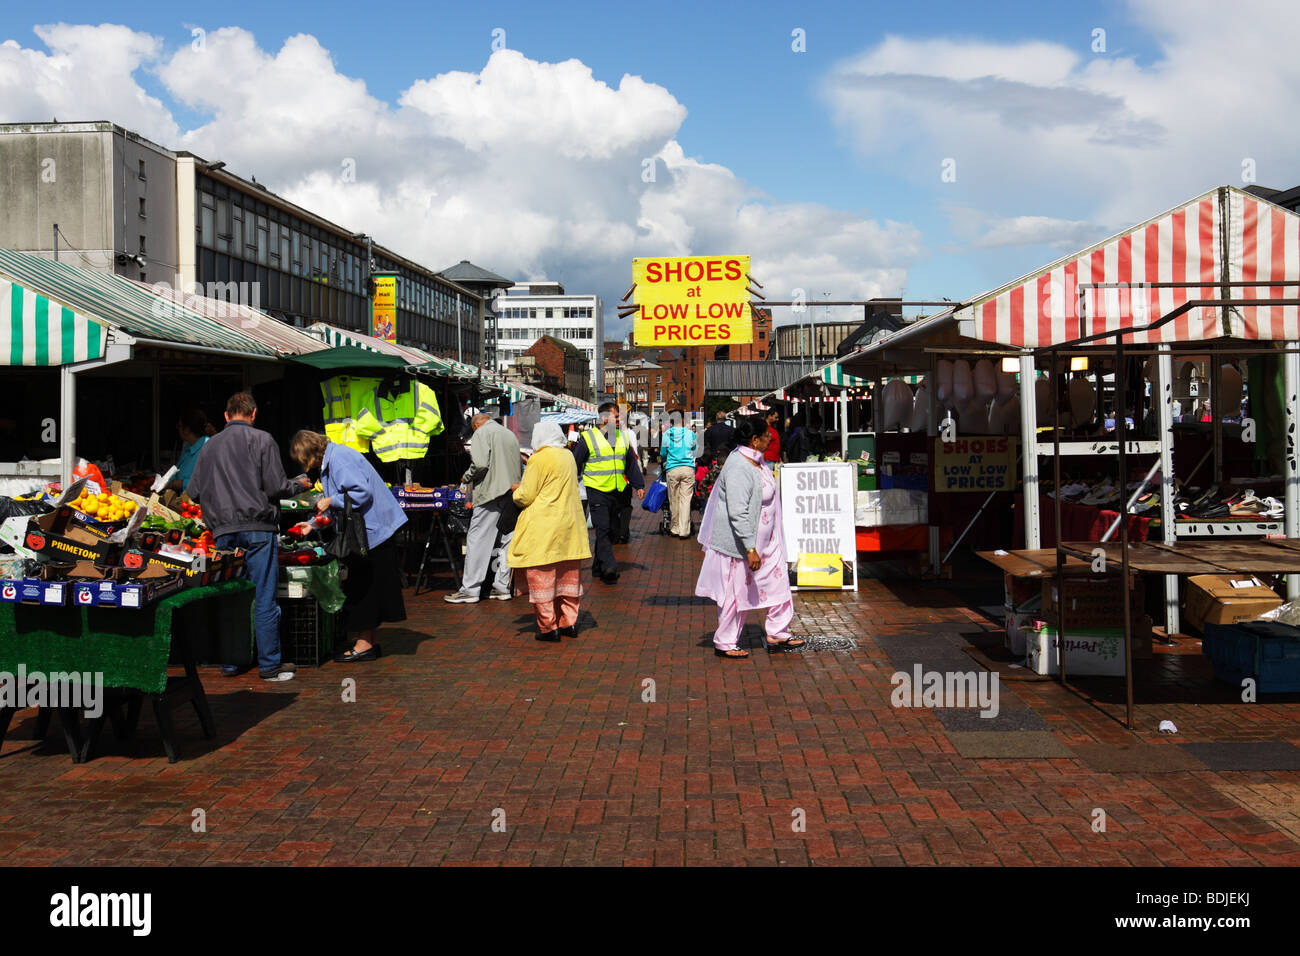 Shoppers looking for bargains at Wolverhampton city market - Stock Image